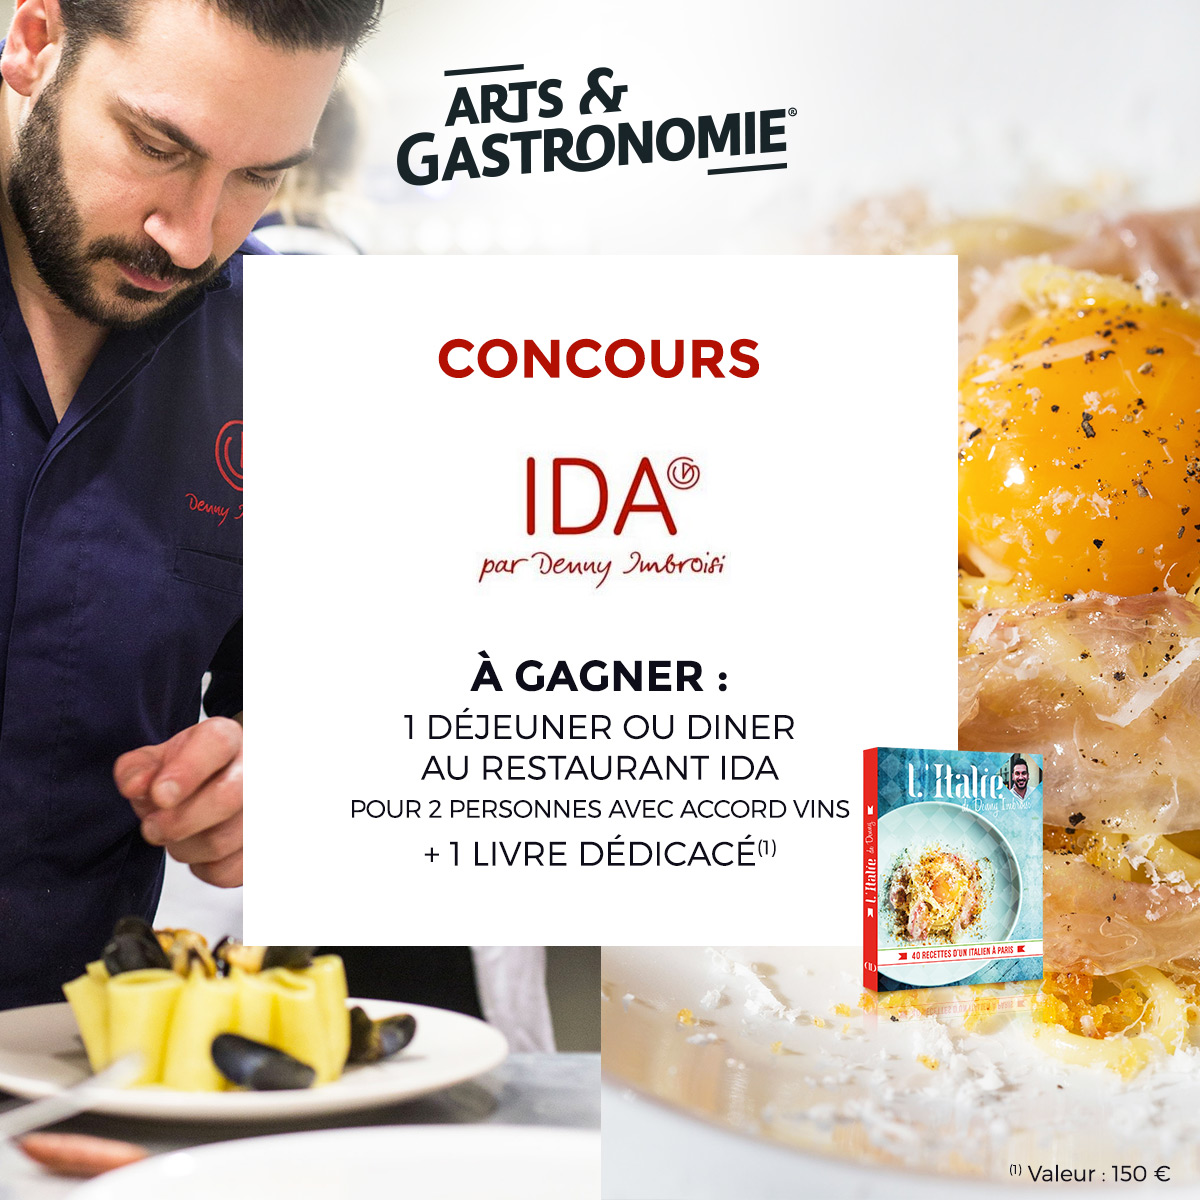 Denny Imbroisi restaurant IDA concours